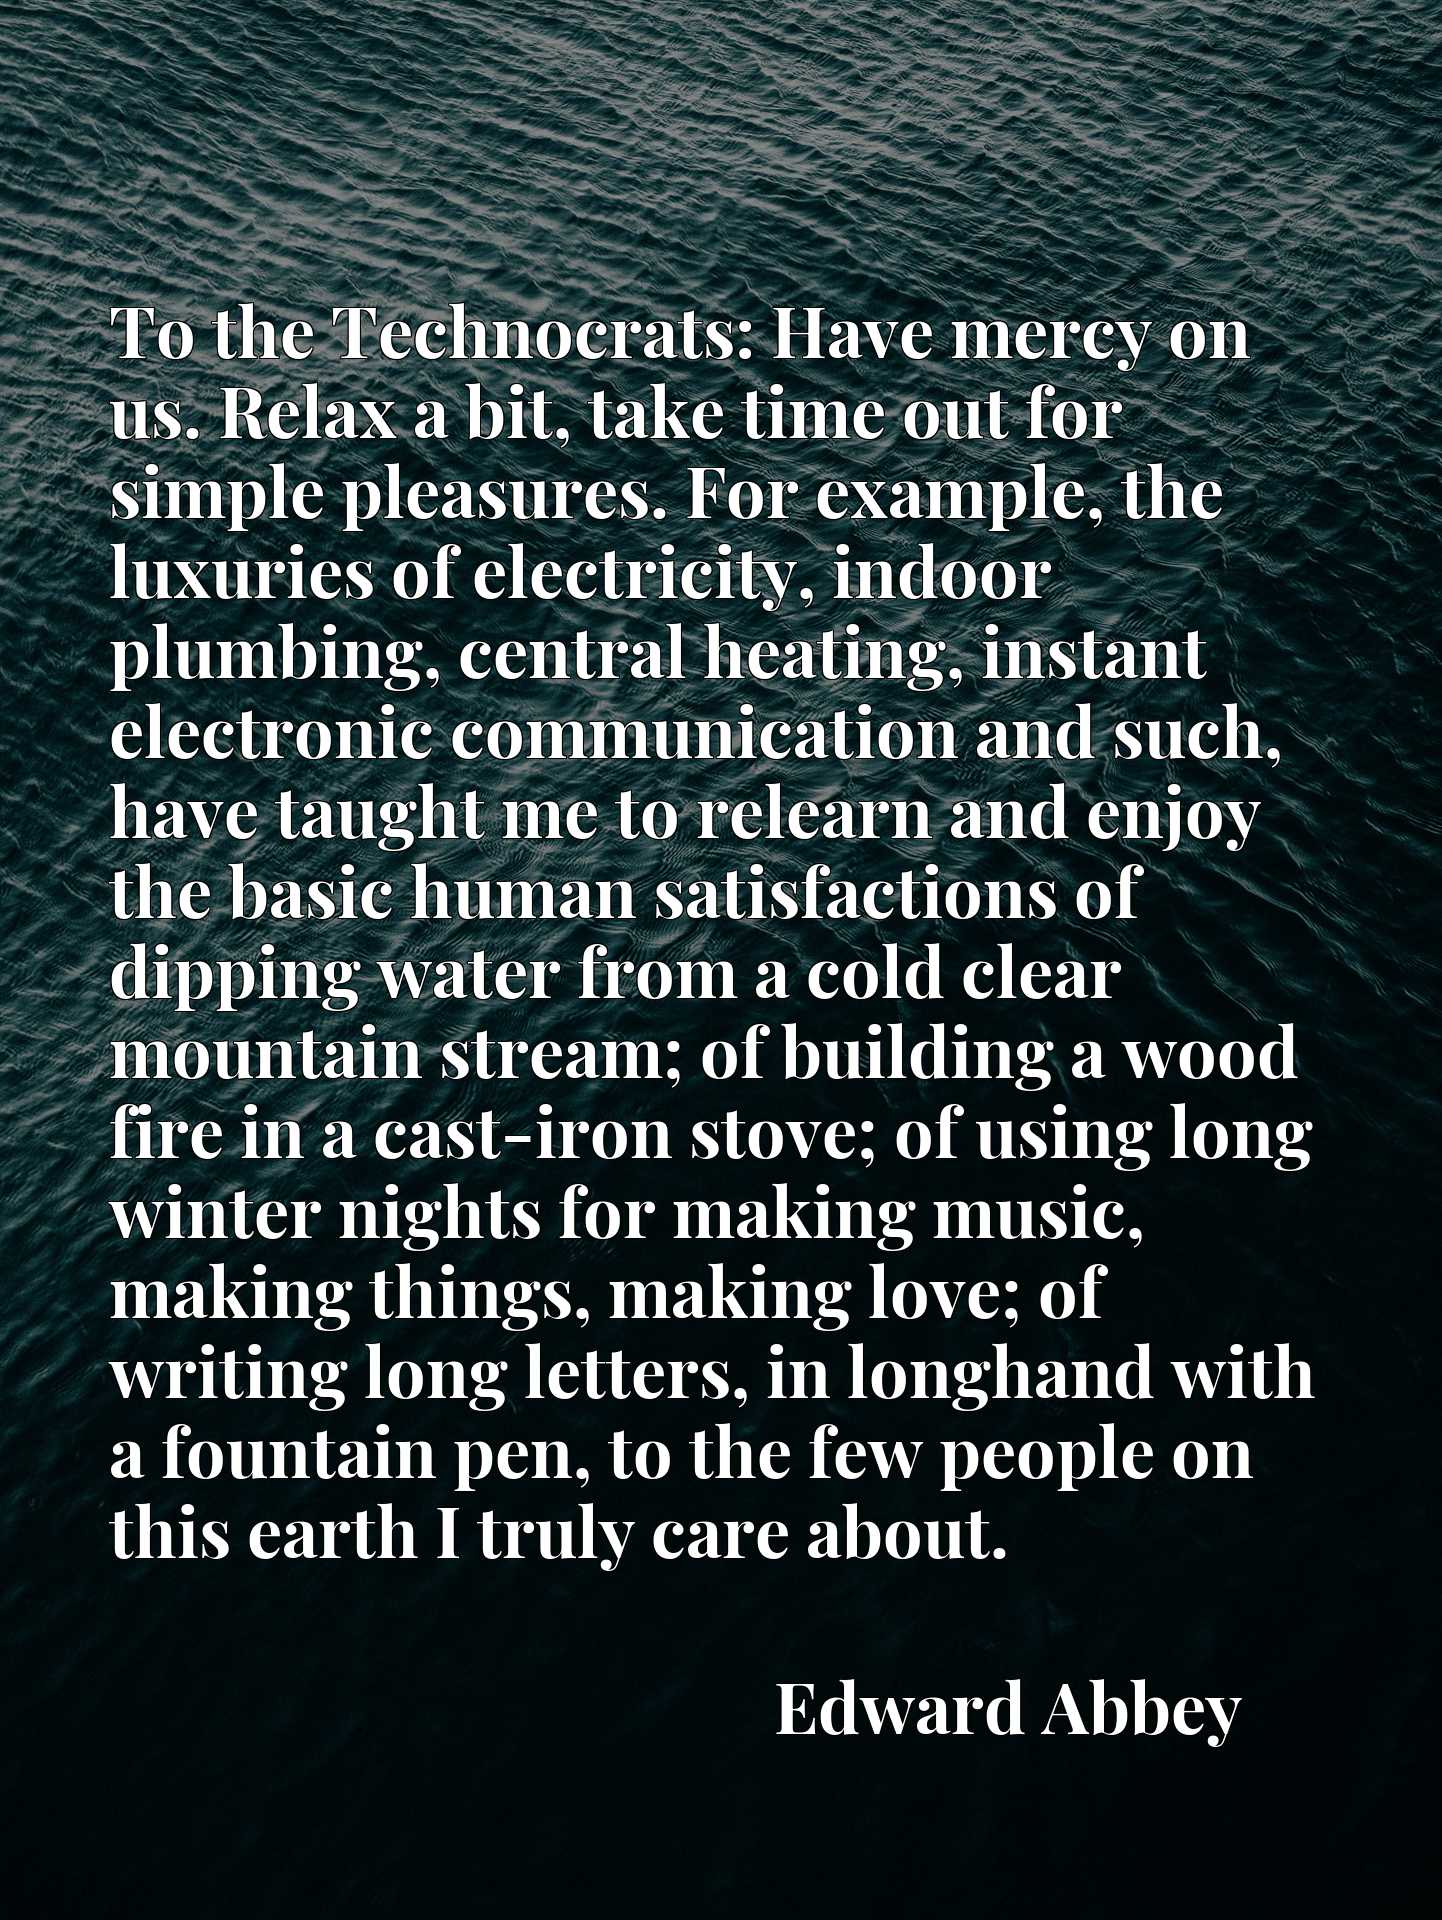 To the Technocrats: Have mercy on us. Relax a bit, take time out for simple pleasures. For example, the luxuries of electricity, indoor plumbing, central heating, instant electronic communication and such, have taught me to relearn and enjoy the basic human satisfactions of dipping water from a cold clear mountain stream; of building a wood fire in a cast-iron stove; of using long winter nights for making music, making things, making love; of writing long letters, in longhand with a fountain pen, to the few people on this earth I truly care about.